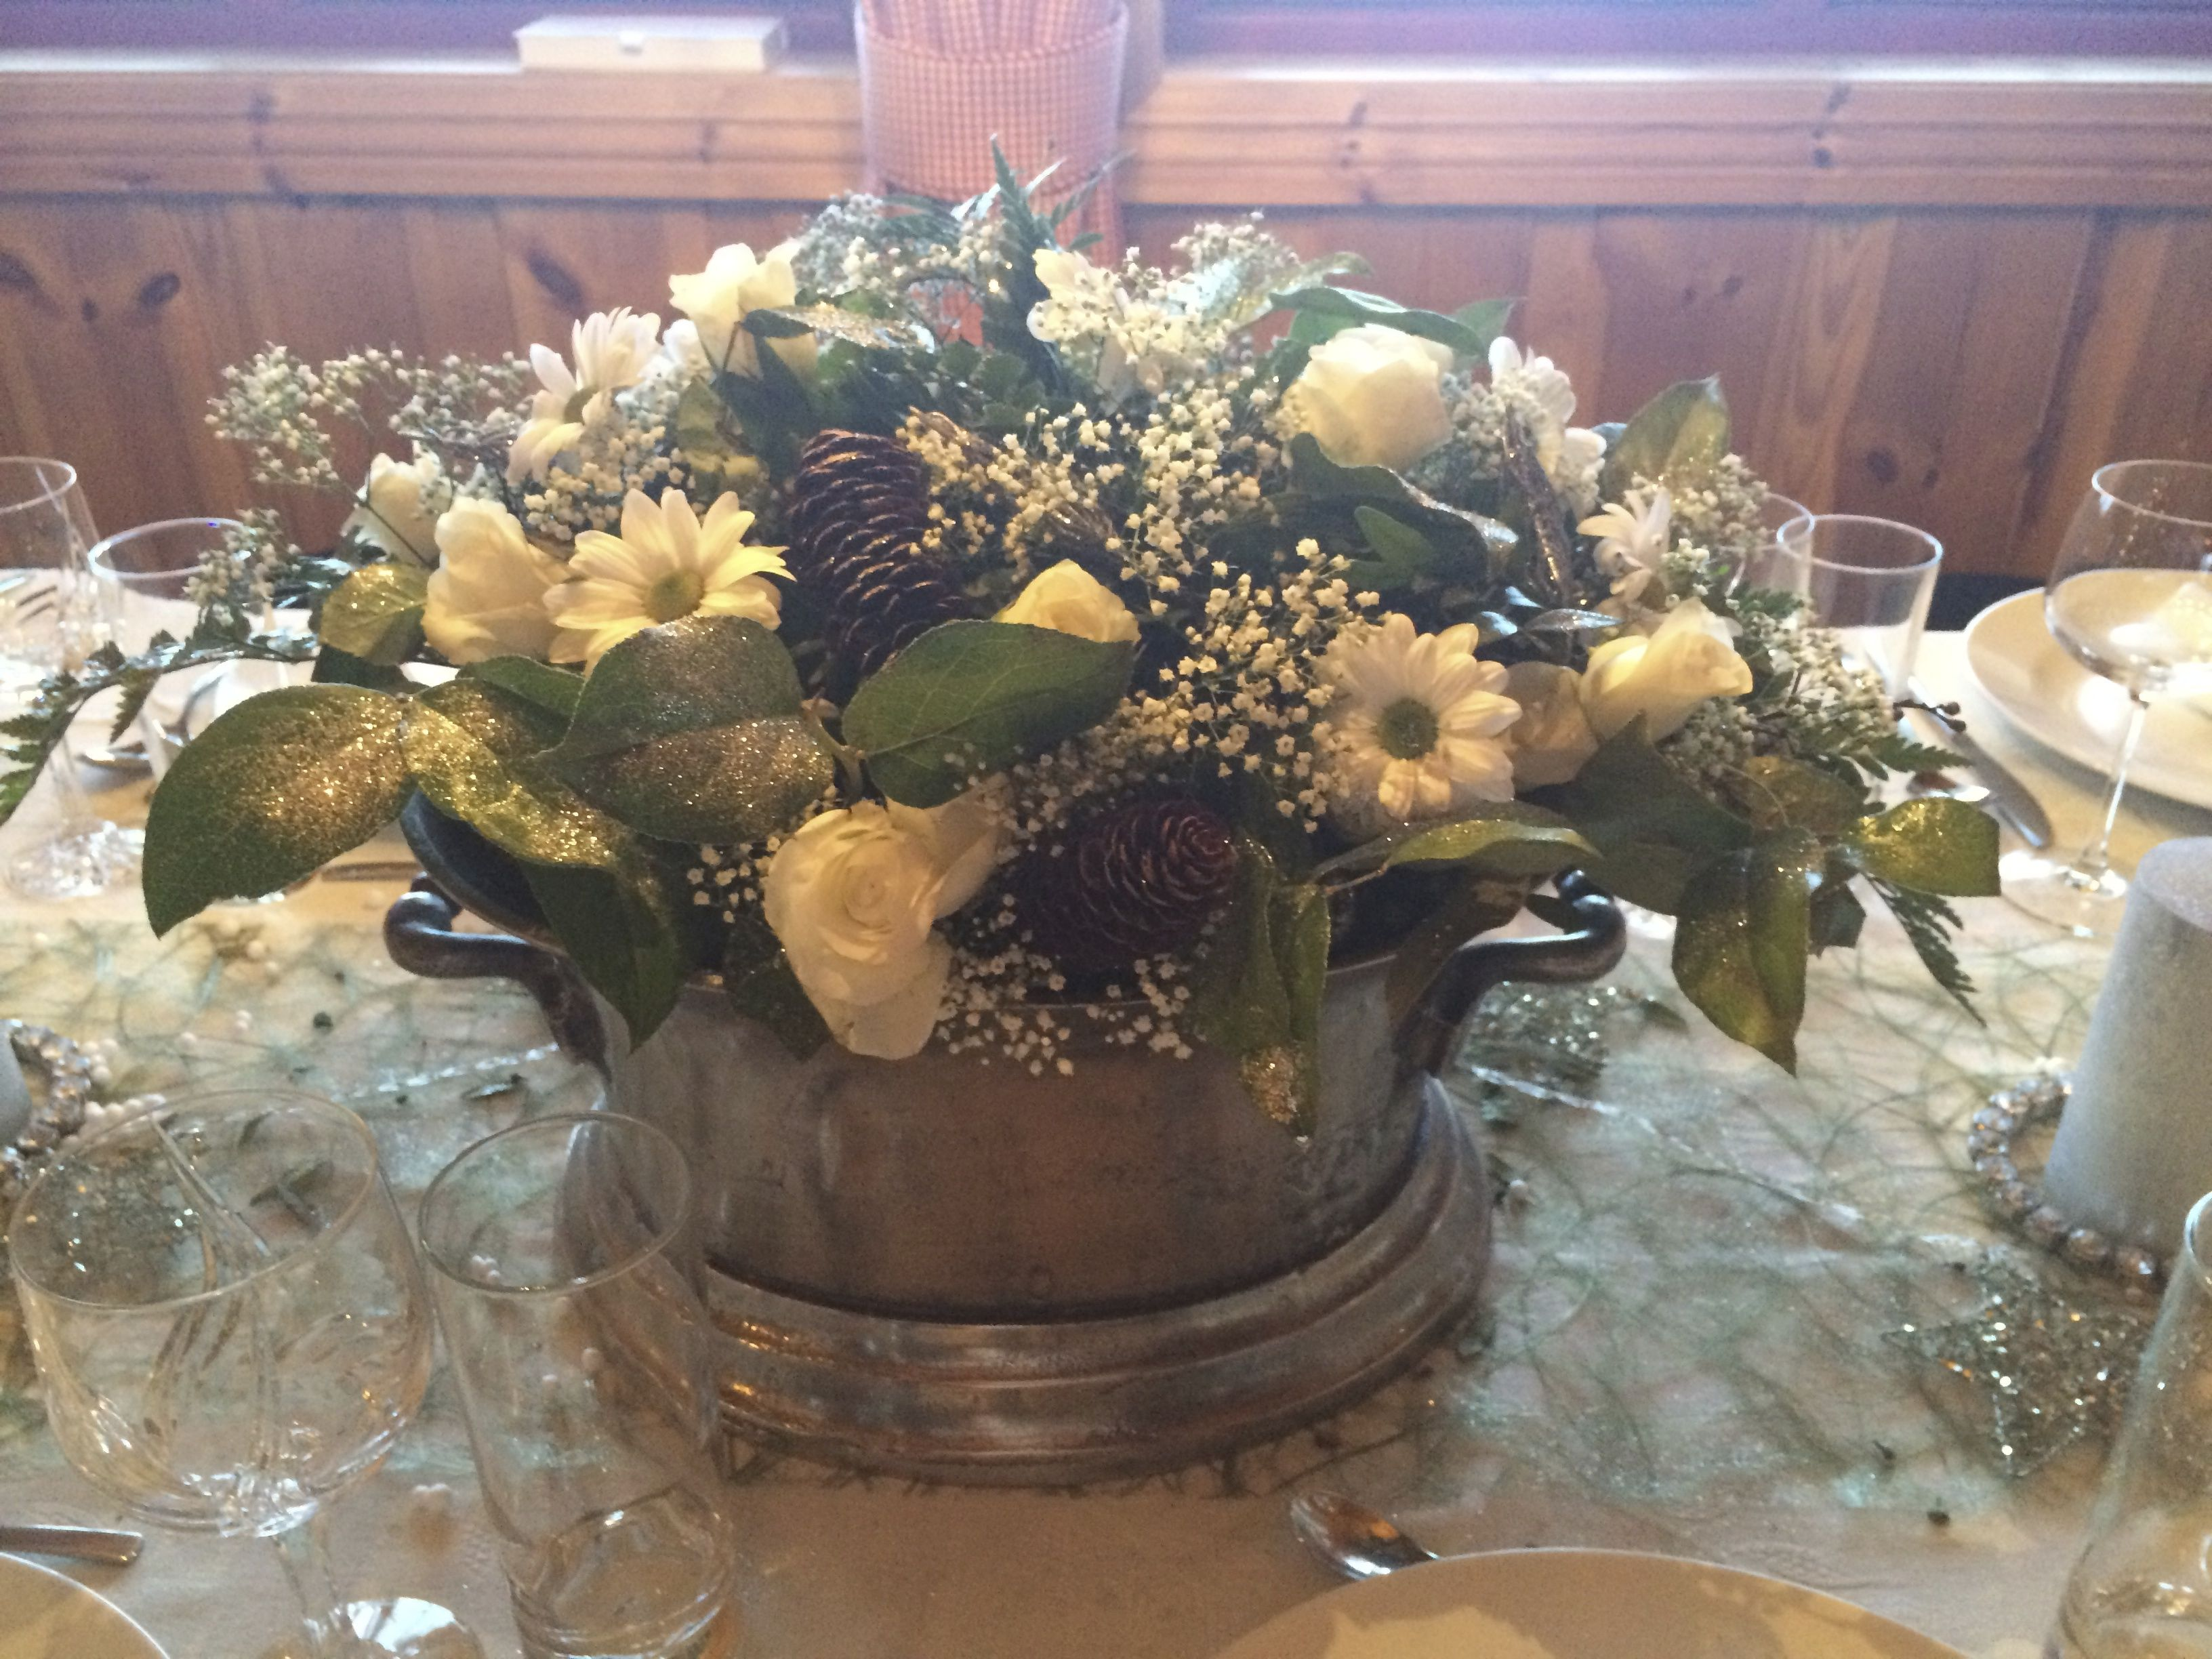 Flower arrangement in a Champagne bucket/cooler.